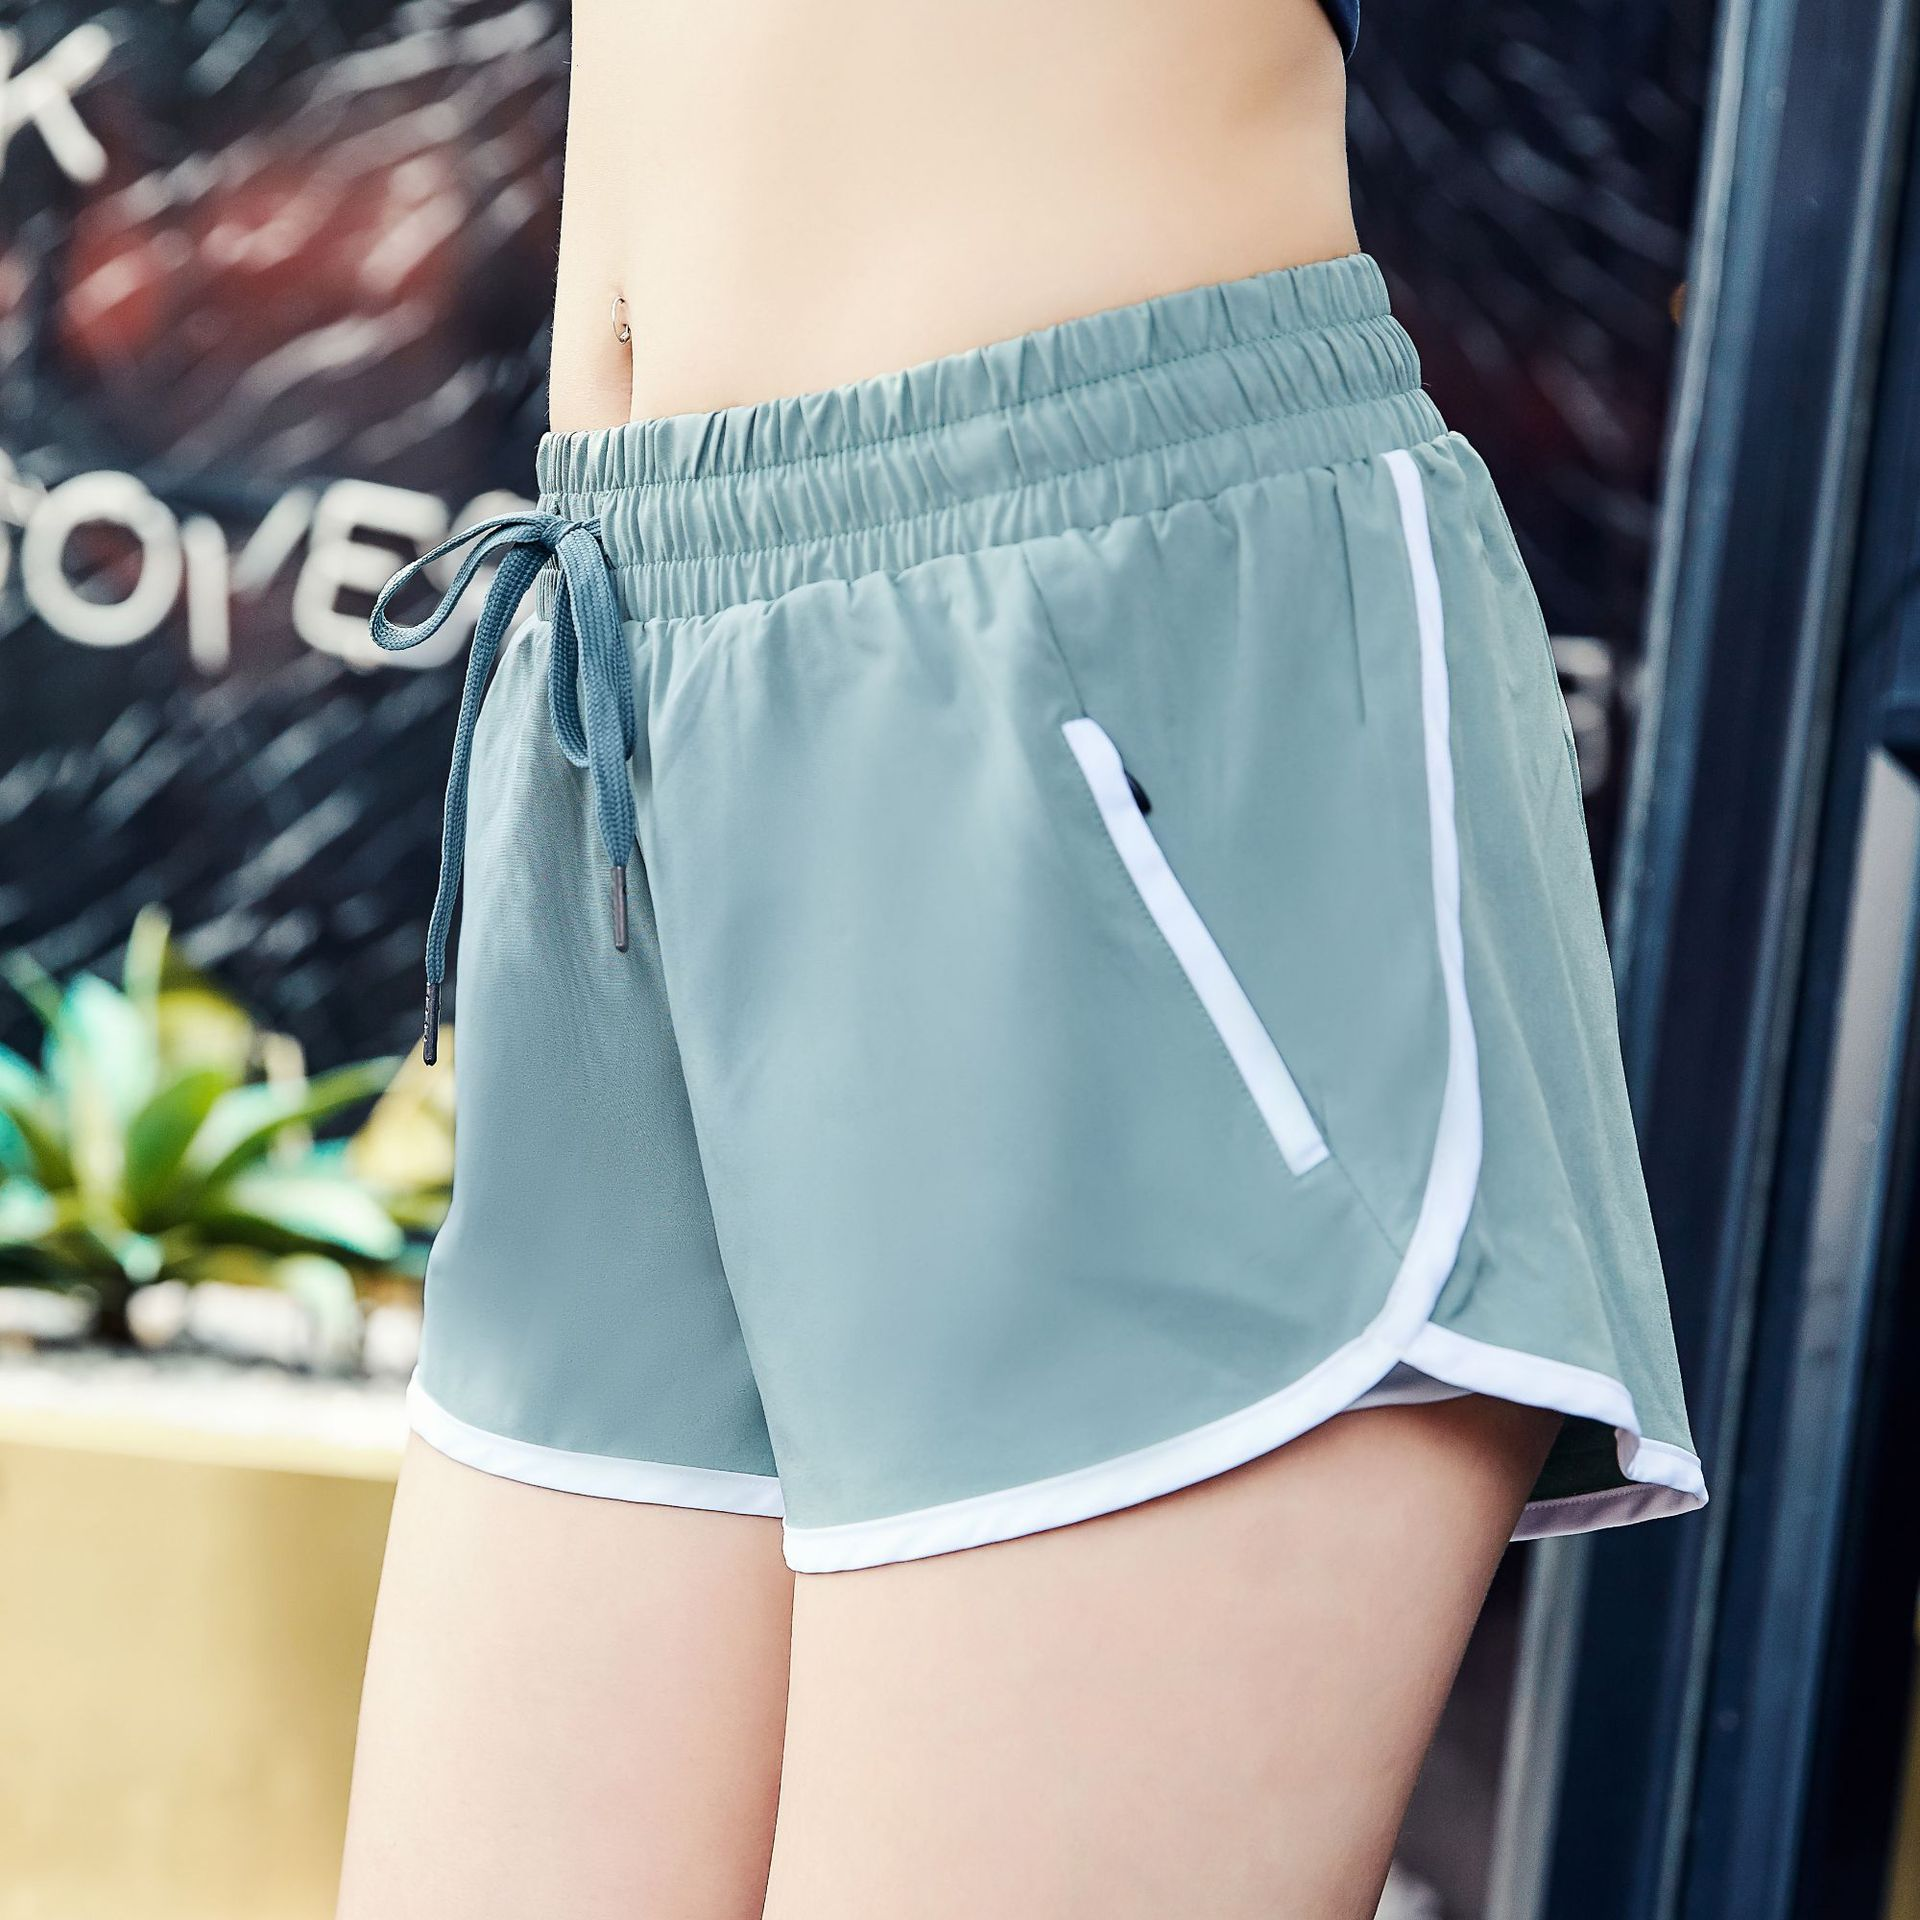 New Summer 2019 Lady Shorts Women's Sports Fitness Pants Size Fast Dry Running Shorts Slim Hip